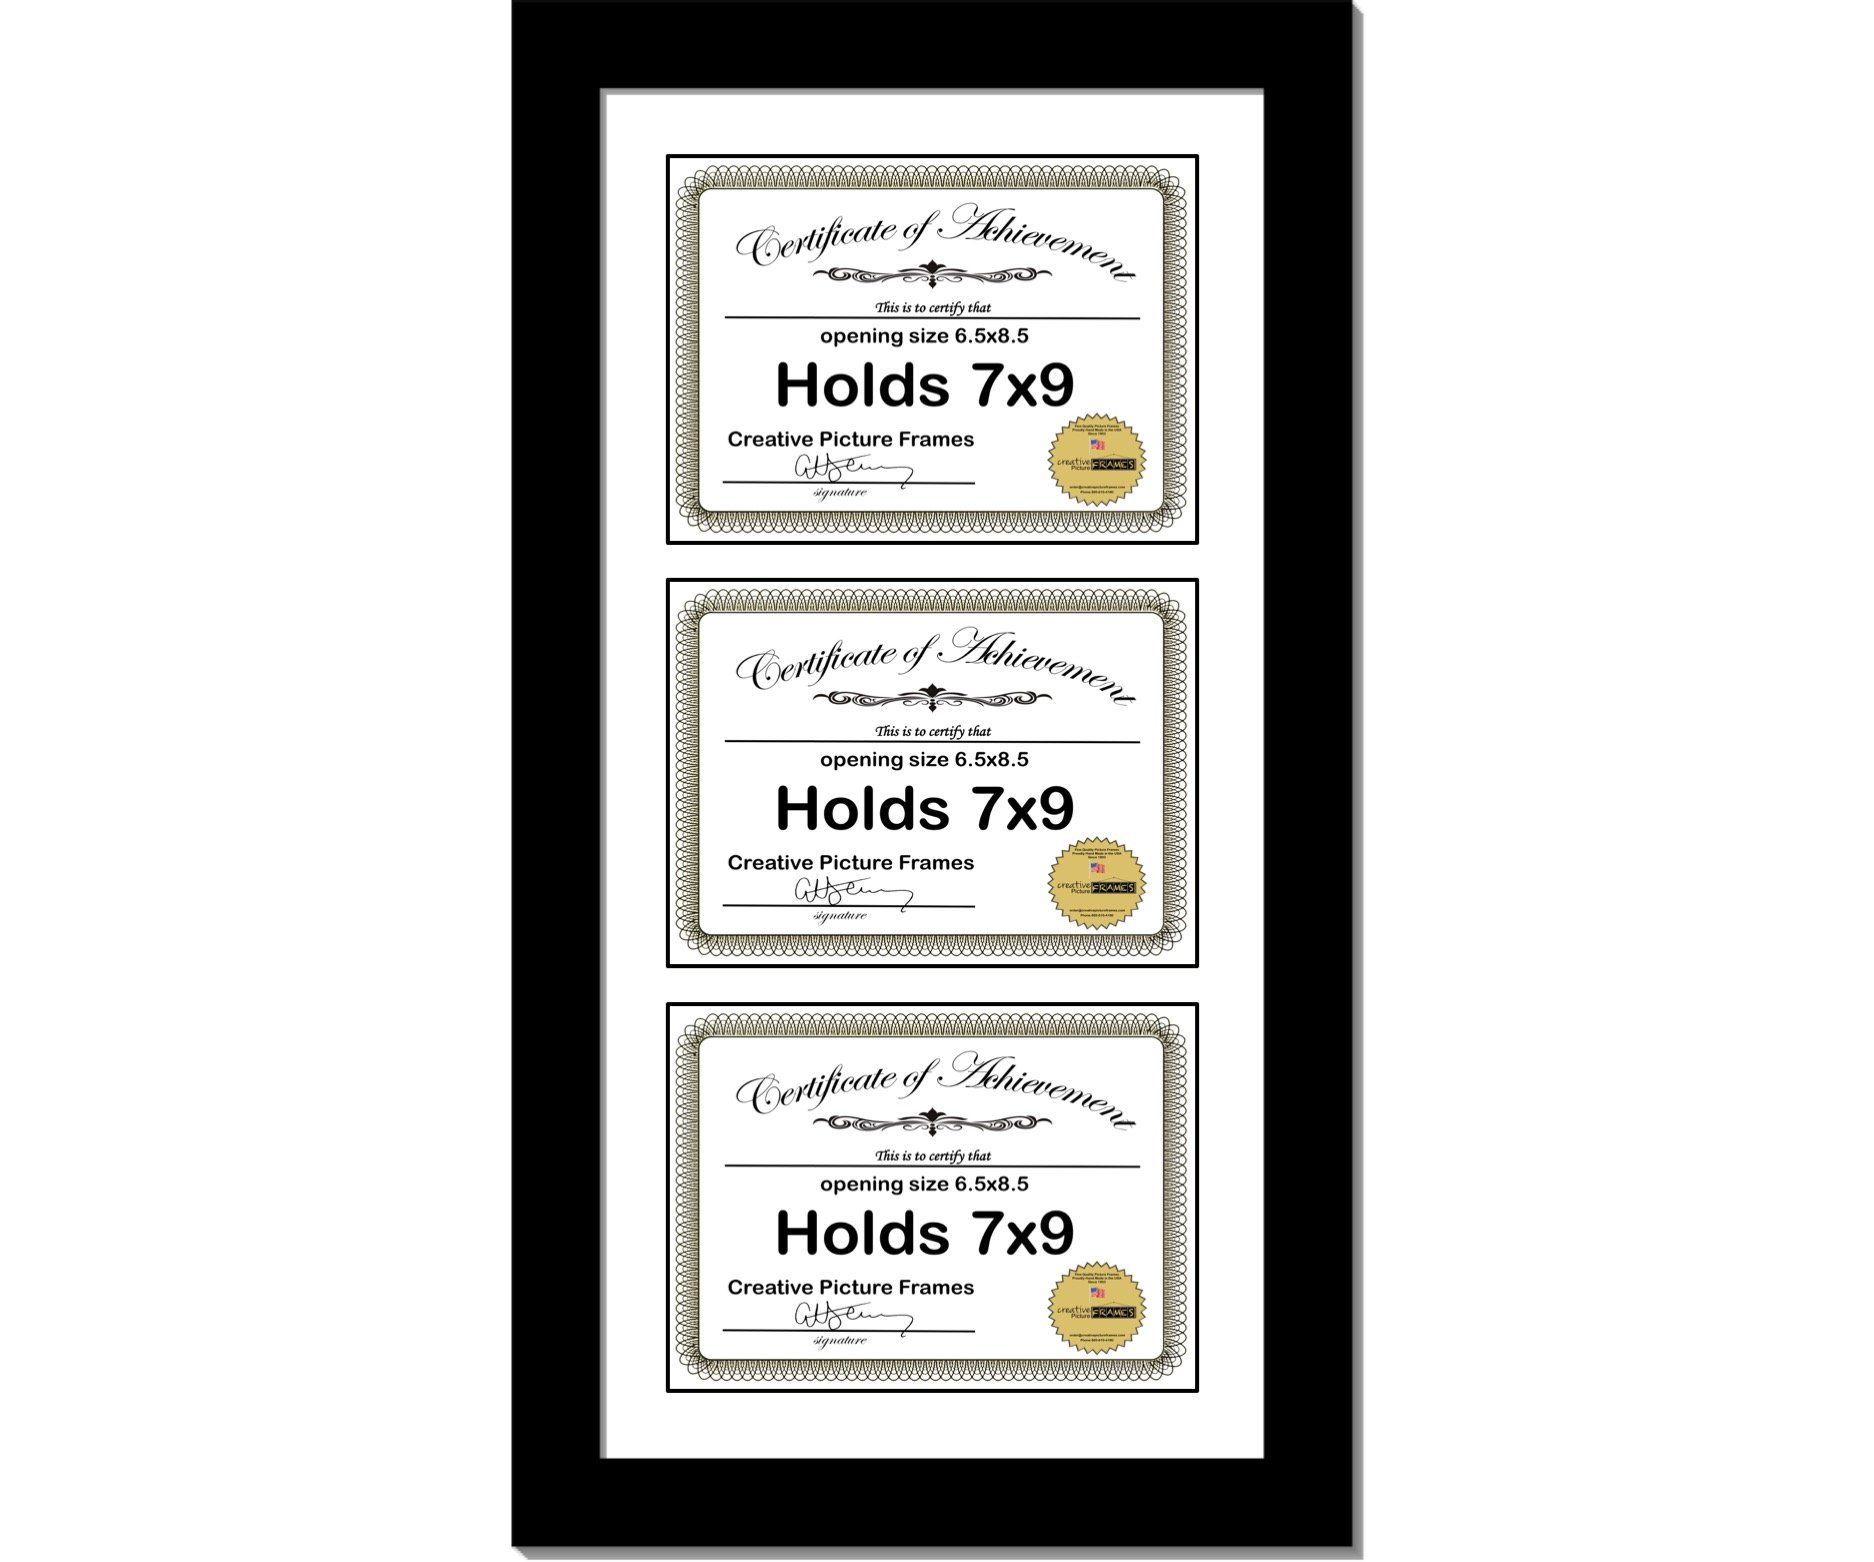 CreativePF [10x24bk-w] Black Vertical 7x9 Triple Diploma Frame with 3 Opening White Matting | Holds 3 7x9 inch Documents with Installed Wall Hanger